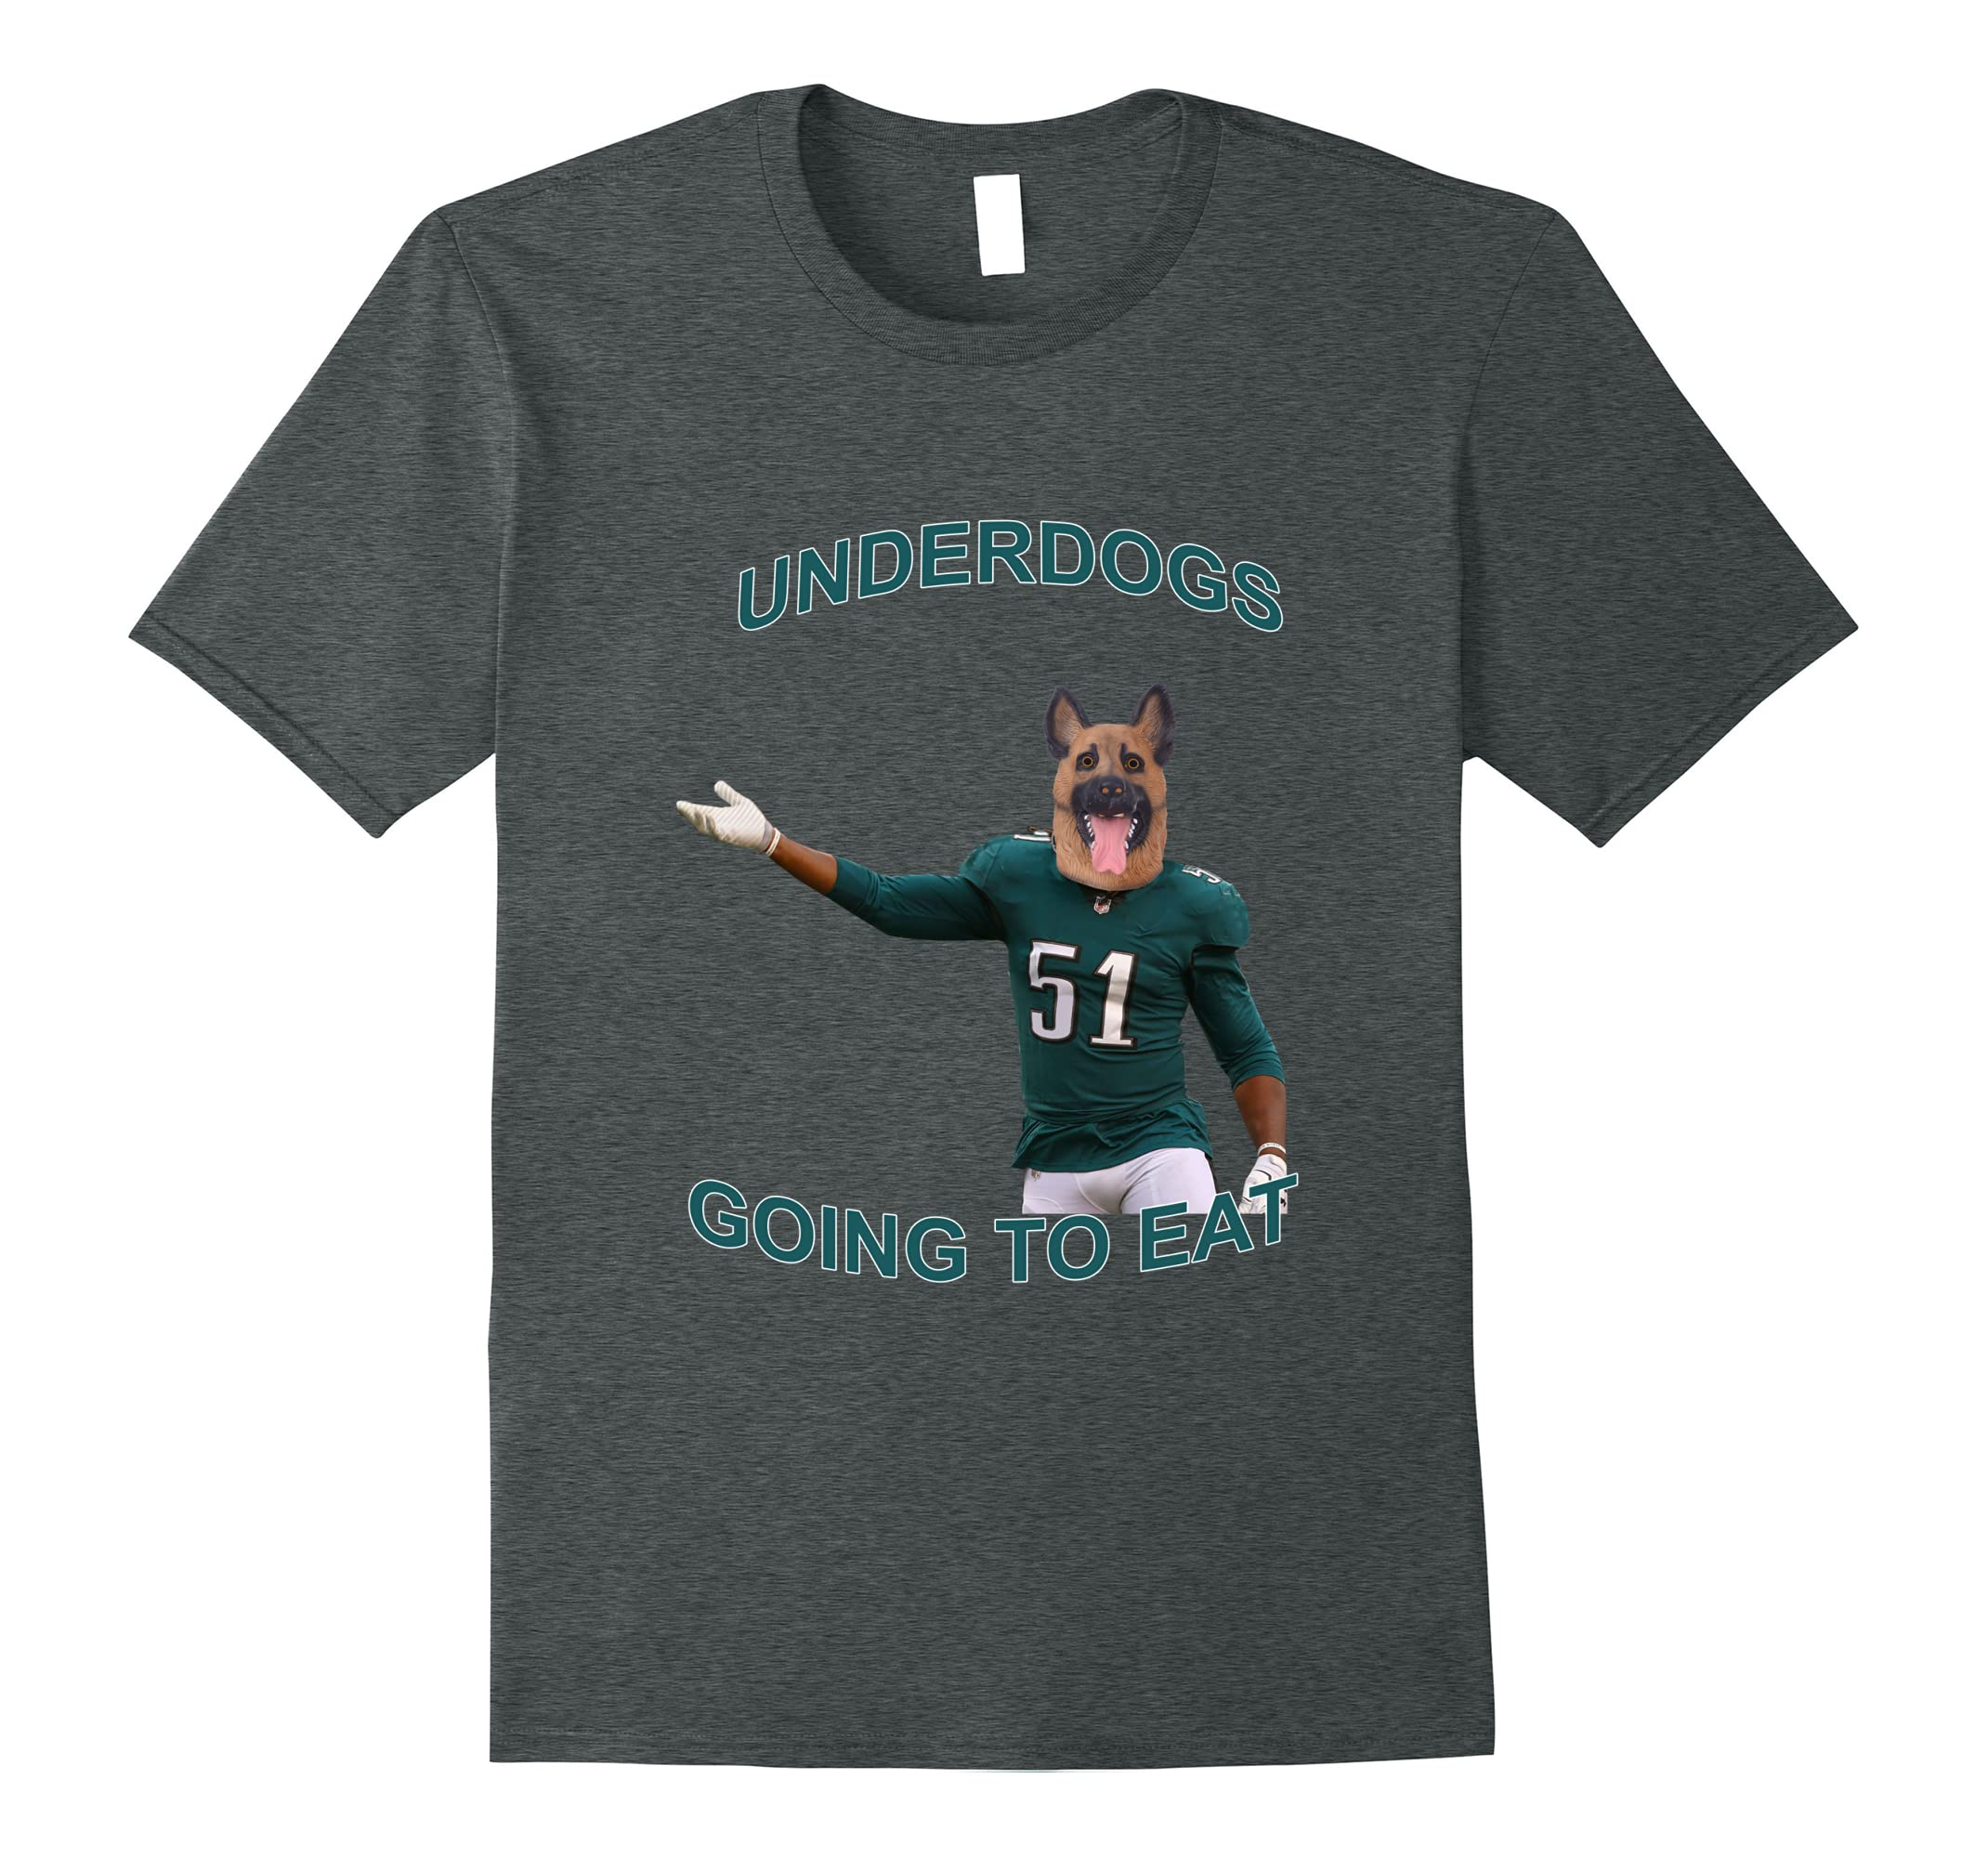 Underdogs Going To Eat Football Shirt-ah my shirt one gift